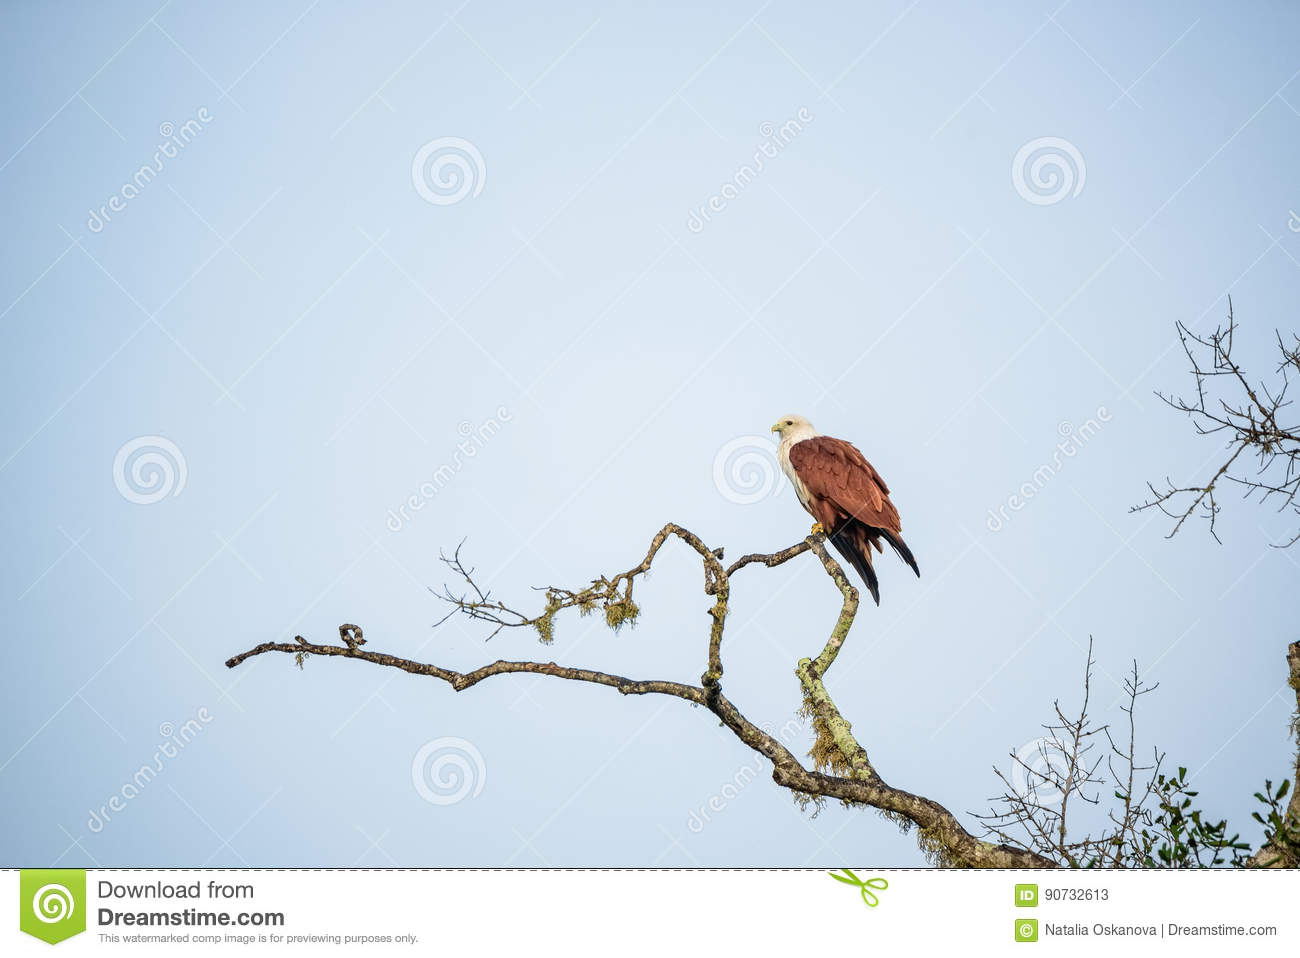 Brahminy Kite or Haliastur indus sits on branch